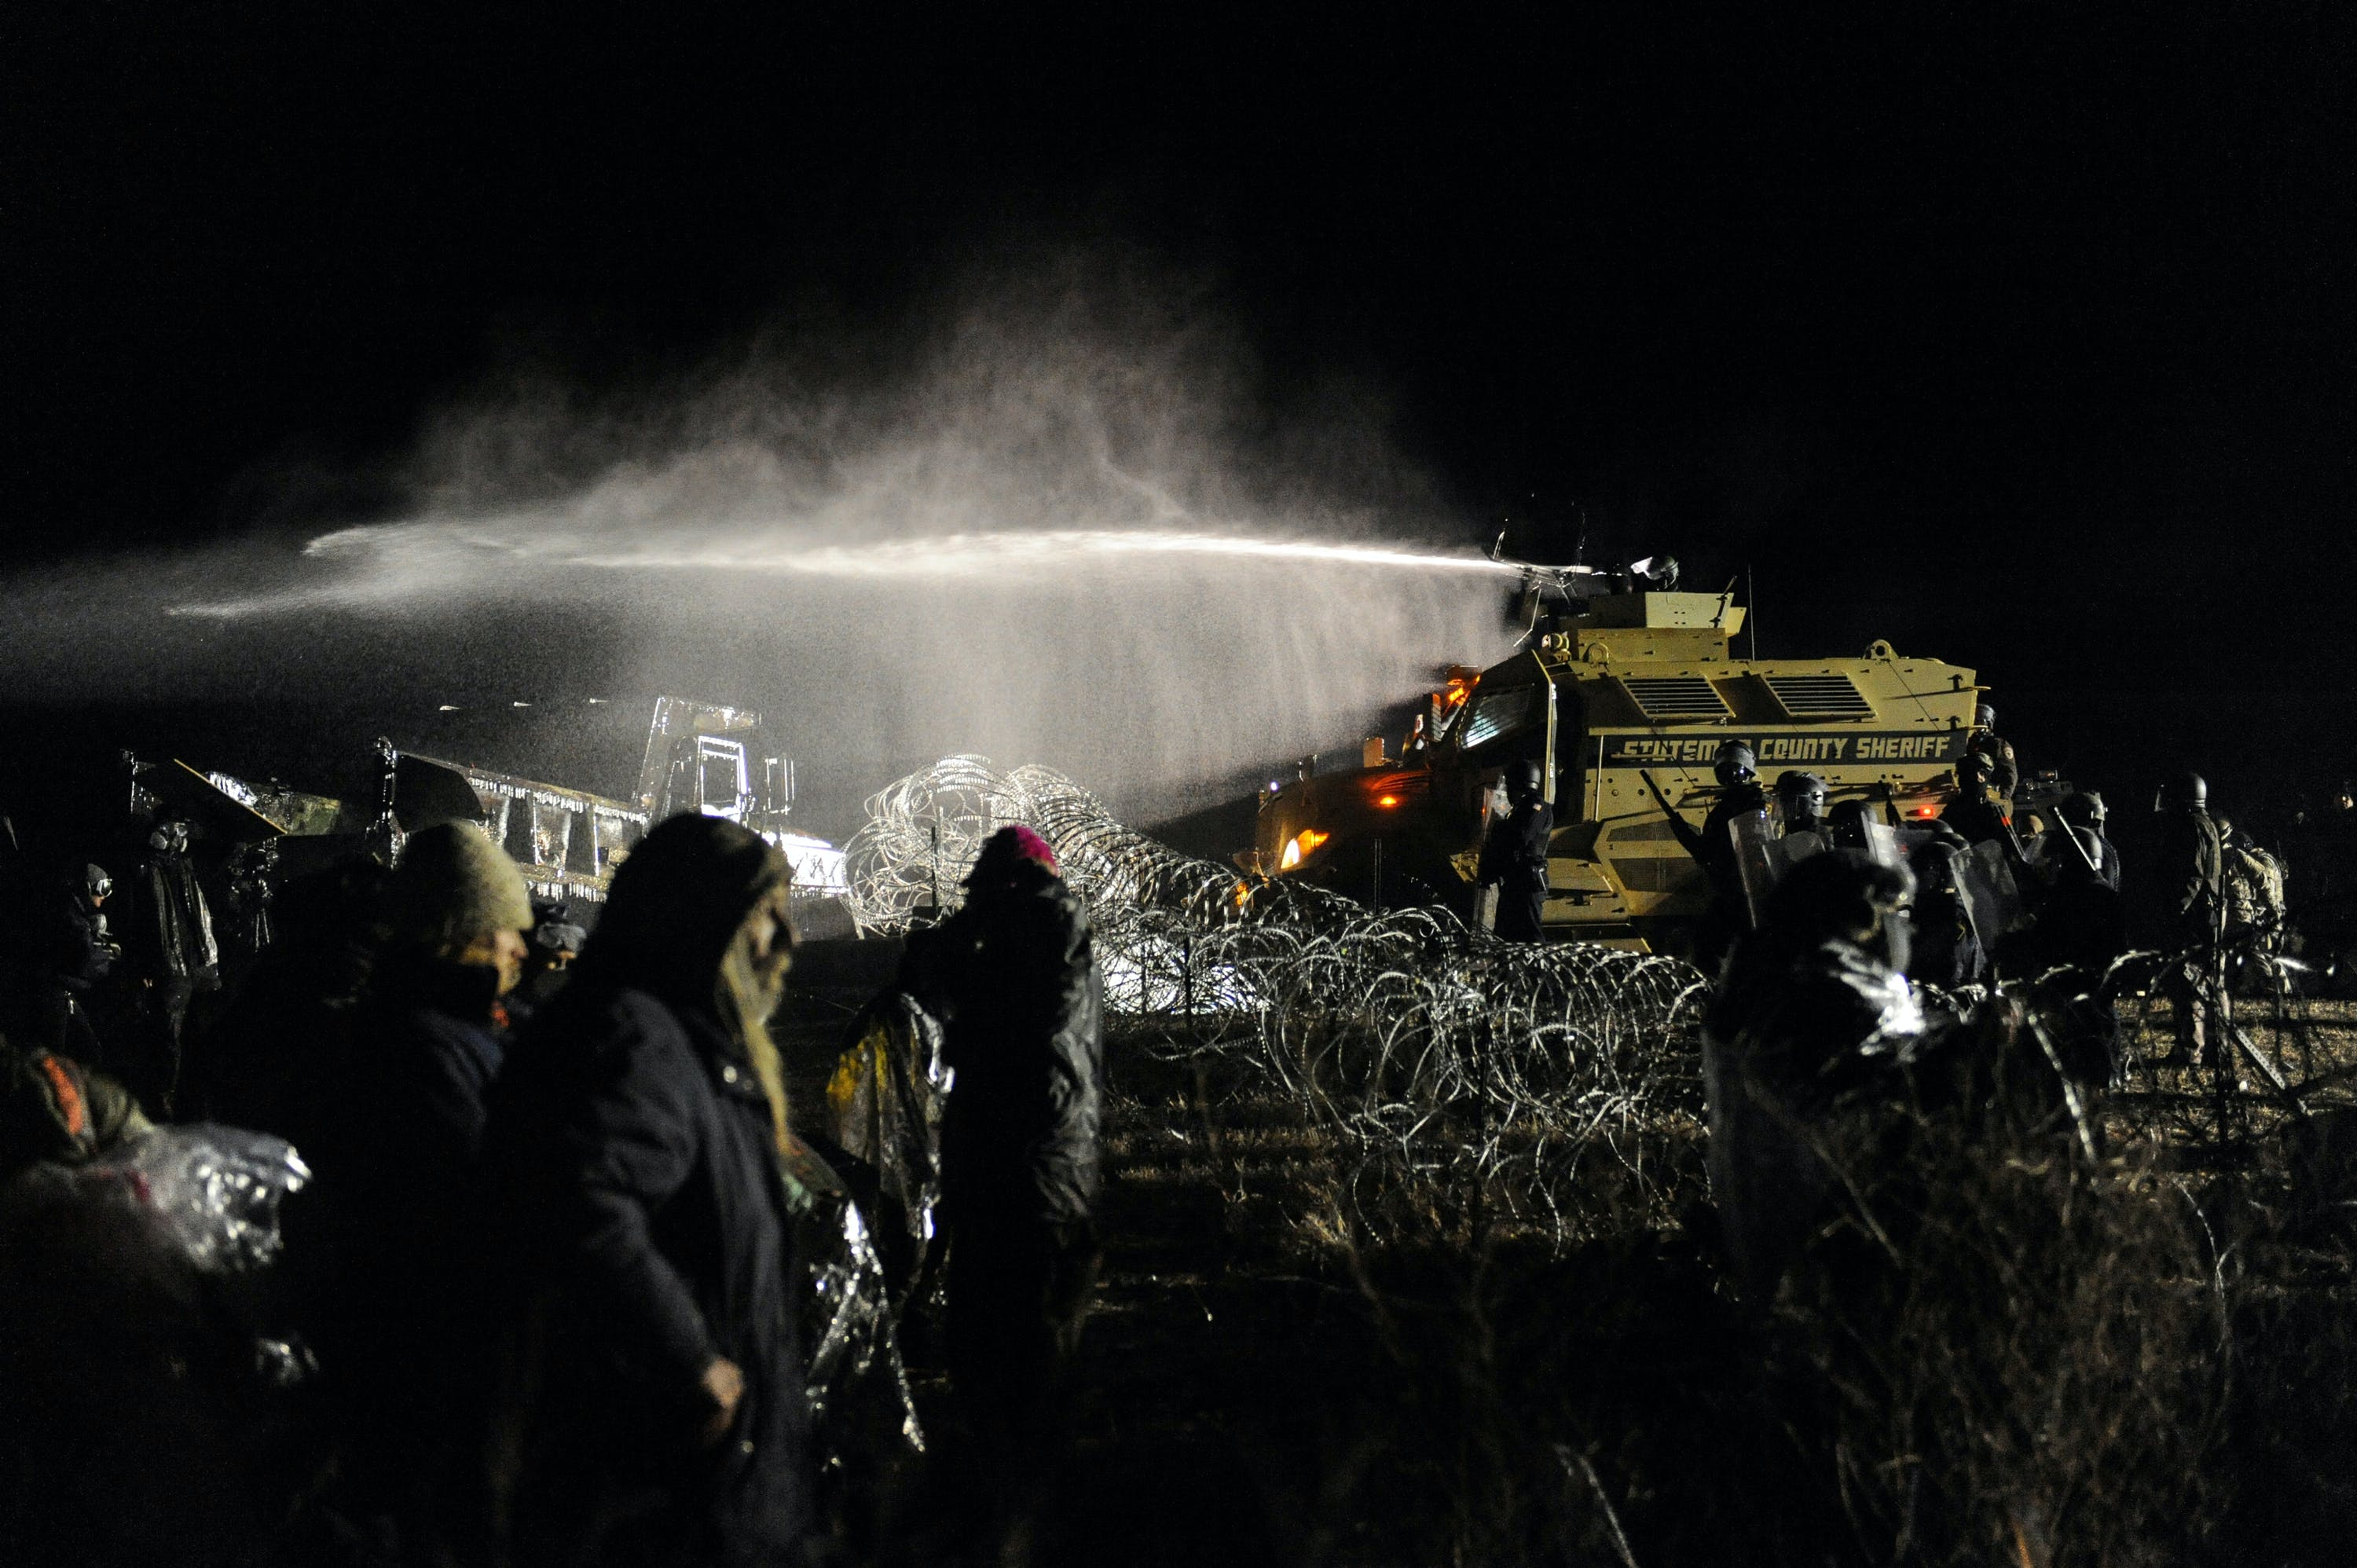 gif;base64,R0lGODlhAQABAAAAACH5BAEKAAEALAAAAAABAAEAAAICTAEAOw== HOW POLICE, PRIVATE SECURITY, AND ENERGY COMPANIES ARE PREPARING FOR A NEW PIPELINE STANDOFF Environment Featured Top Stories U.S. [your]NEWS